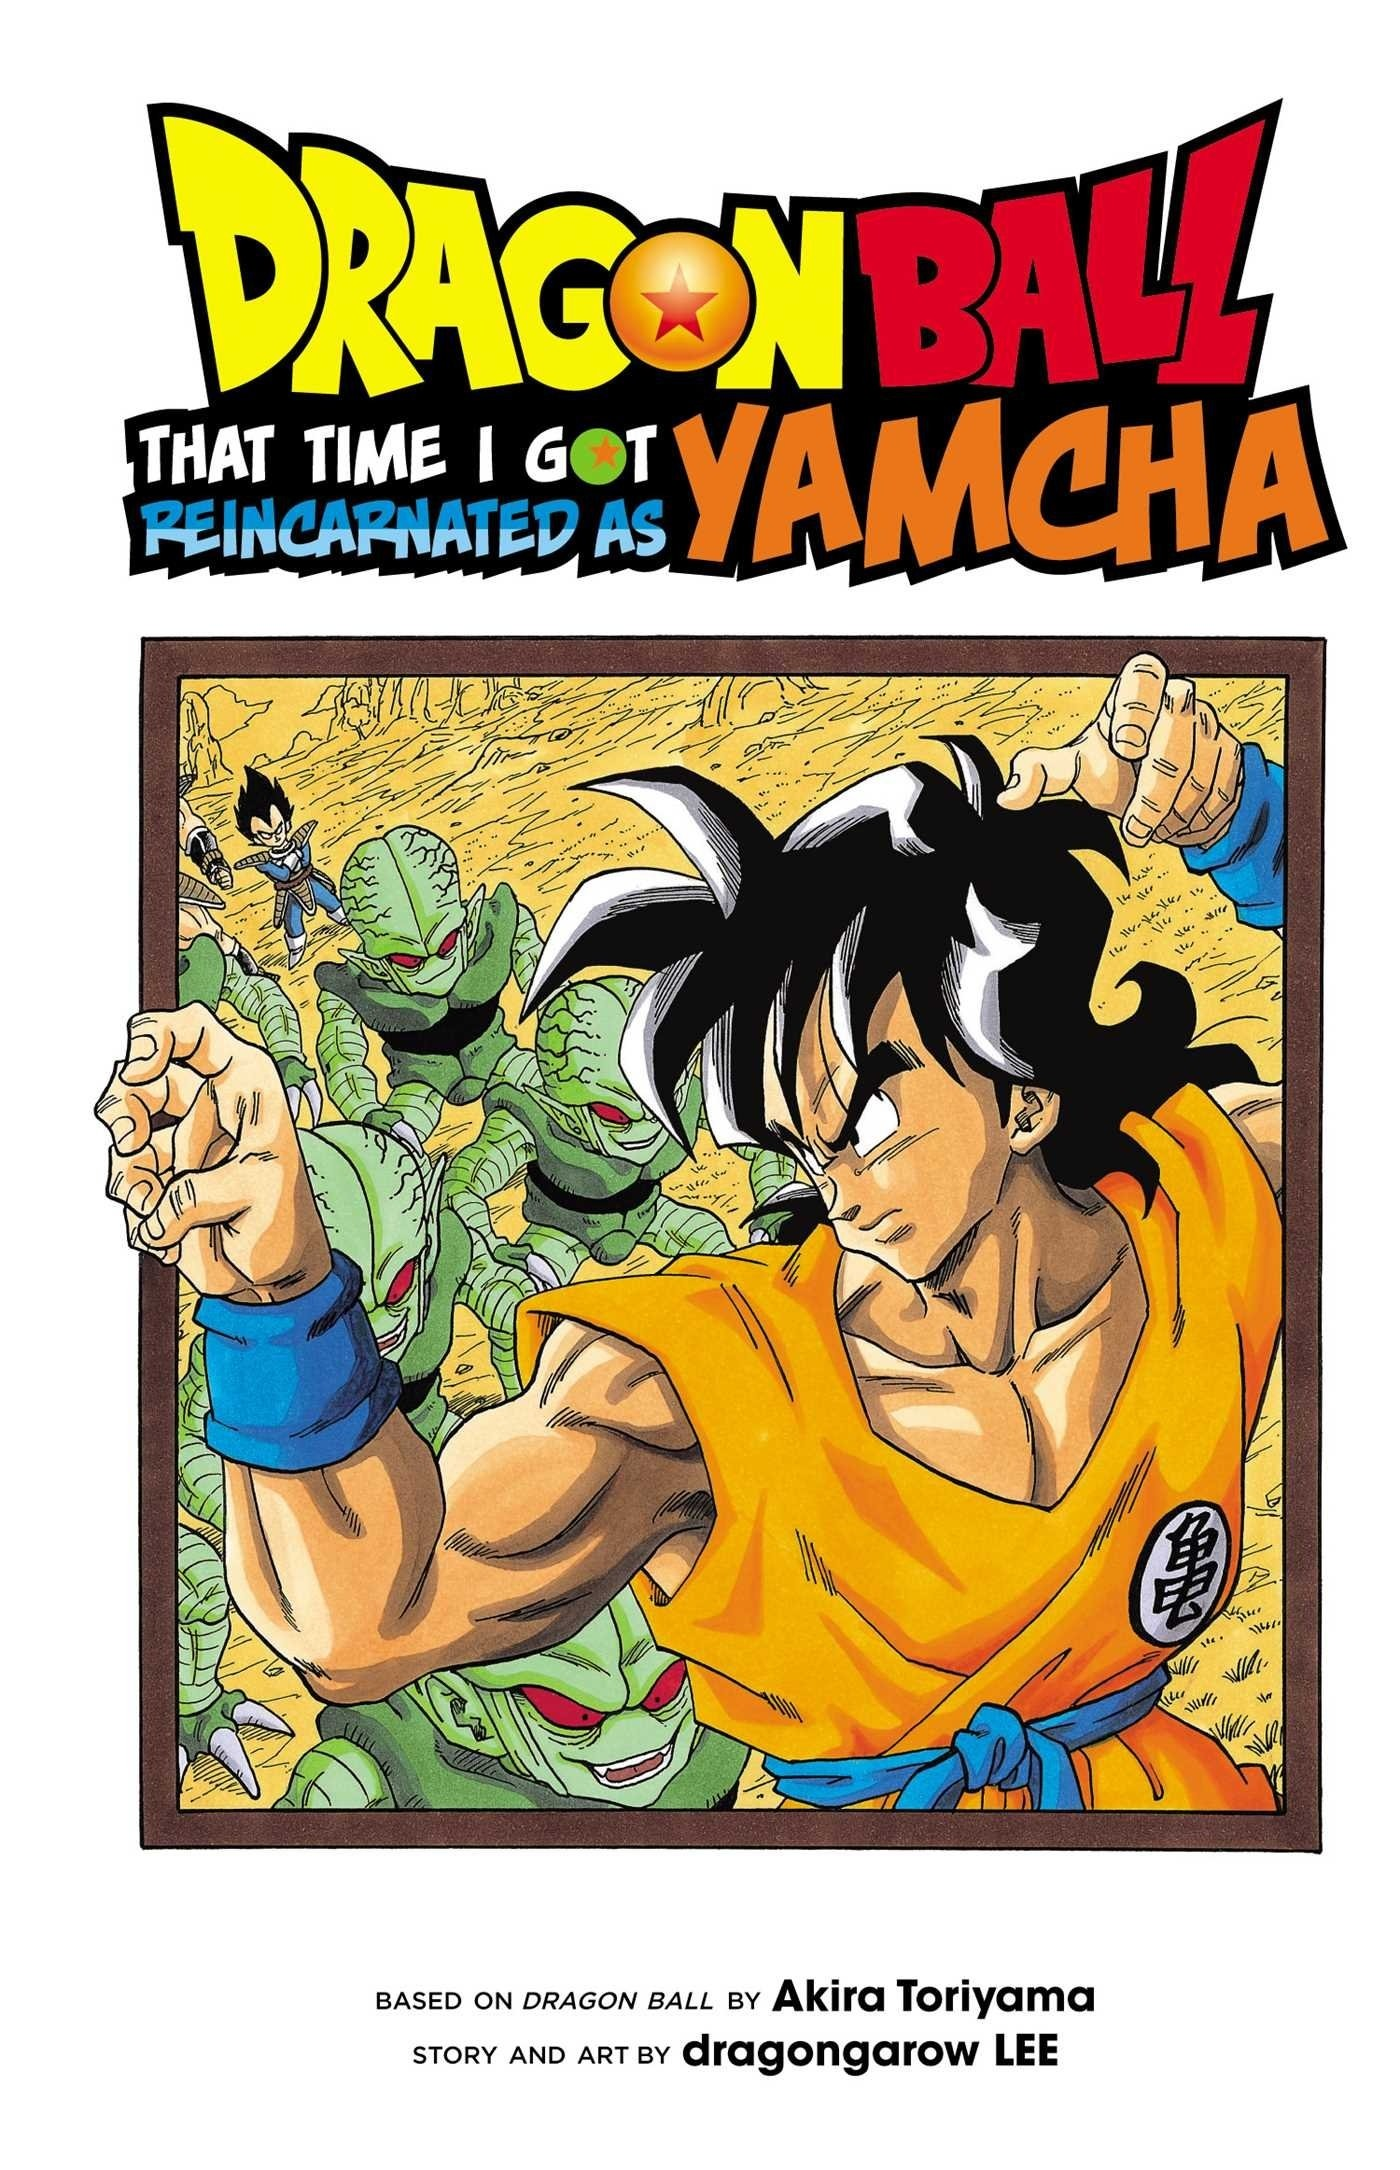 Dragon Ball, That Time I Got Reincarnated as Yamcha!